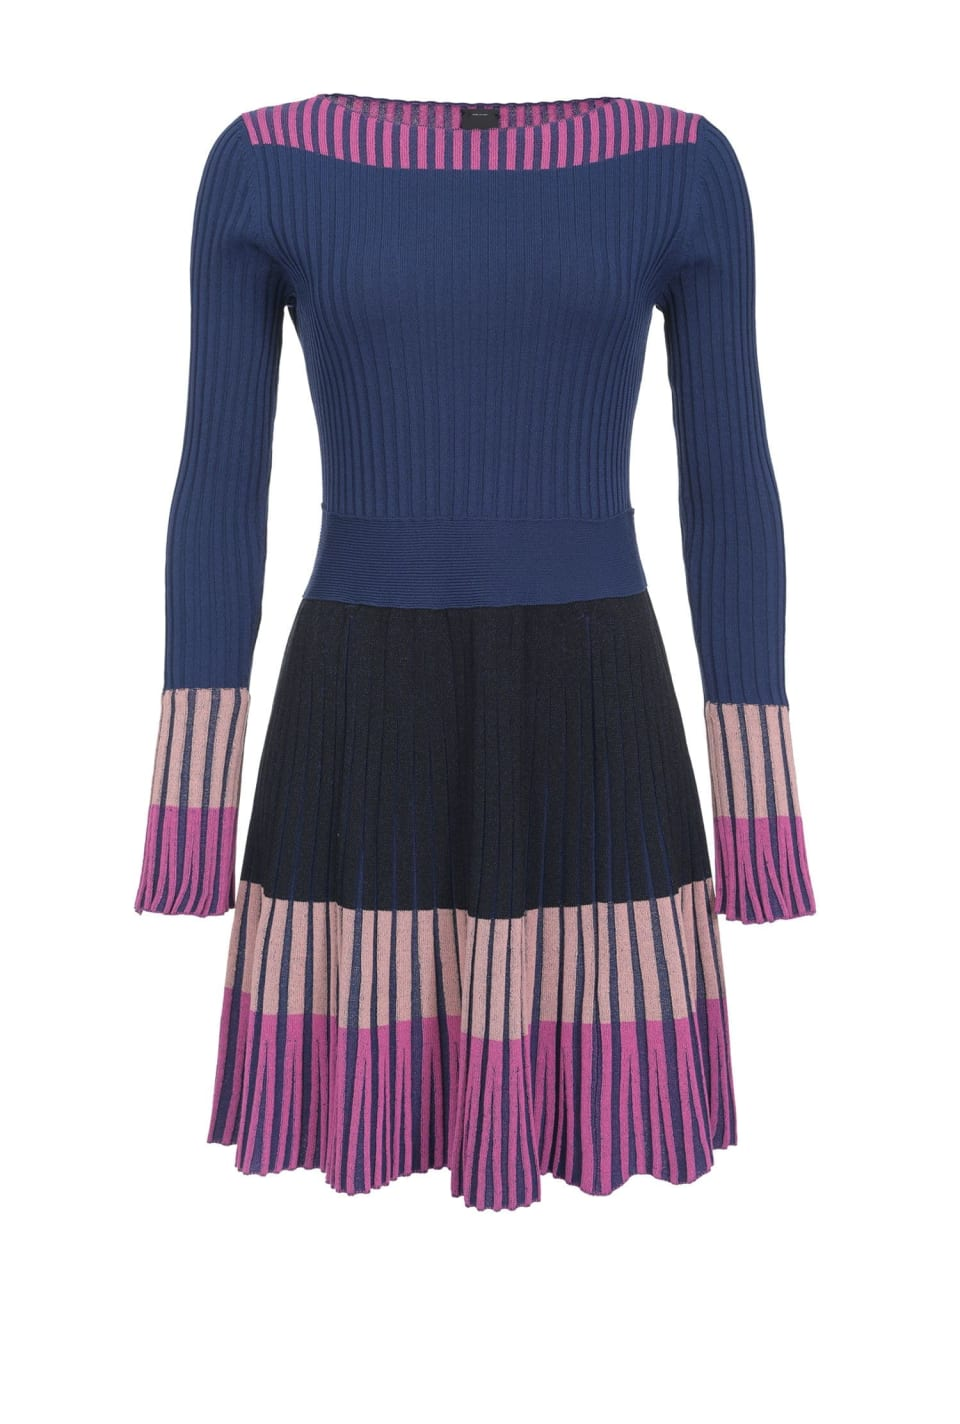 Dress in colour block knit